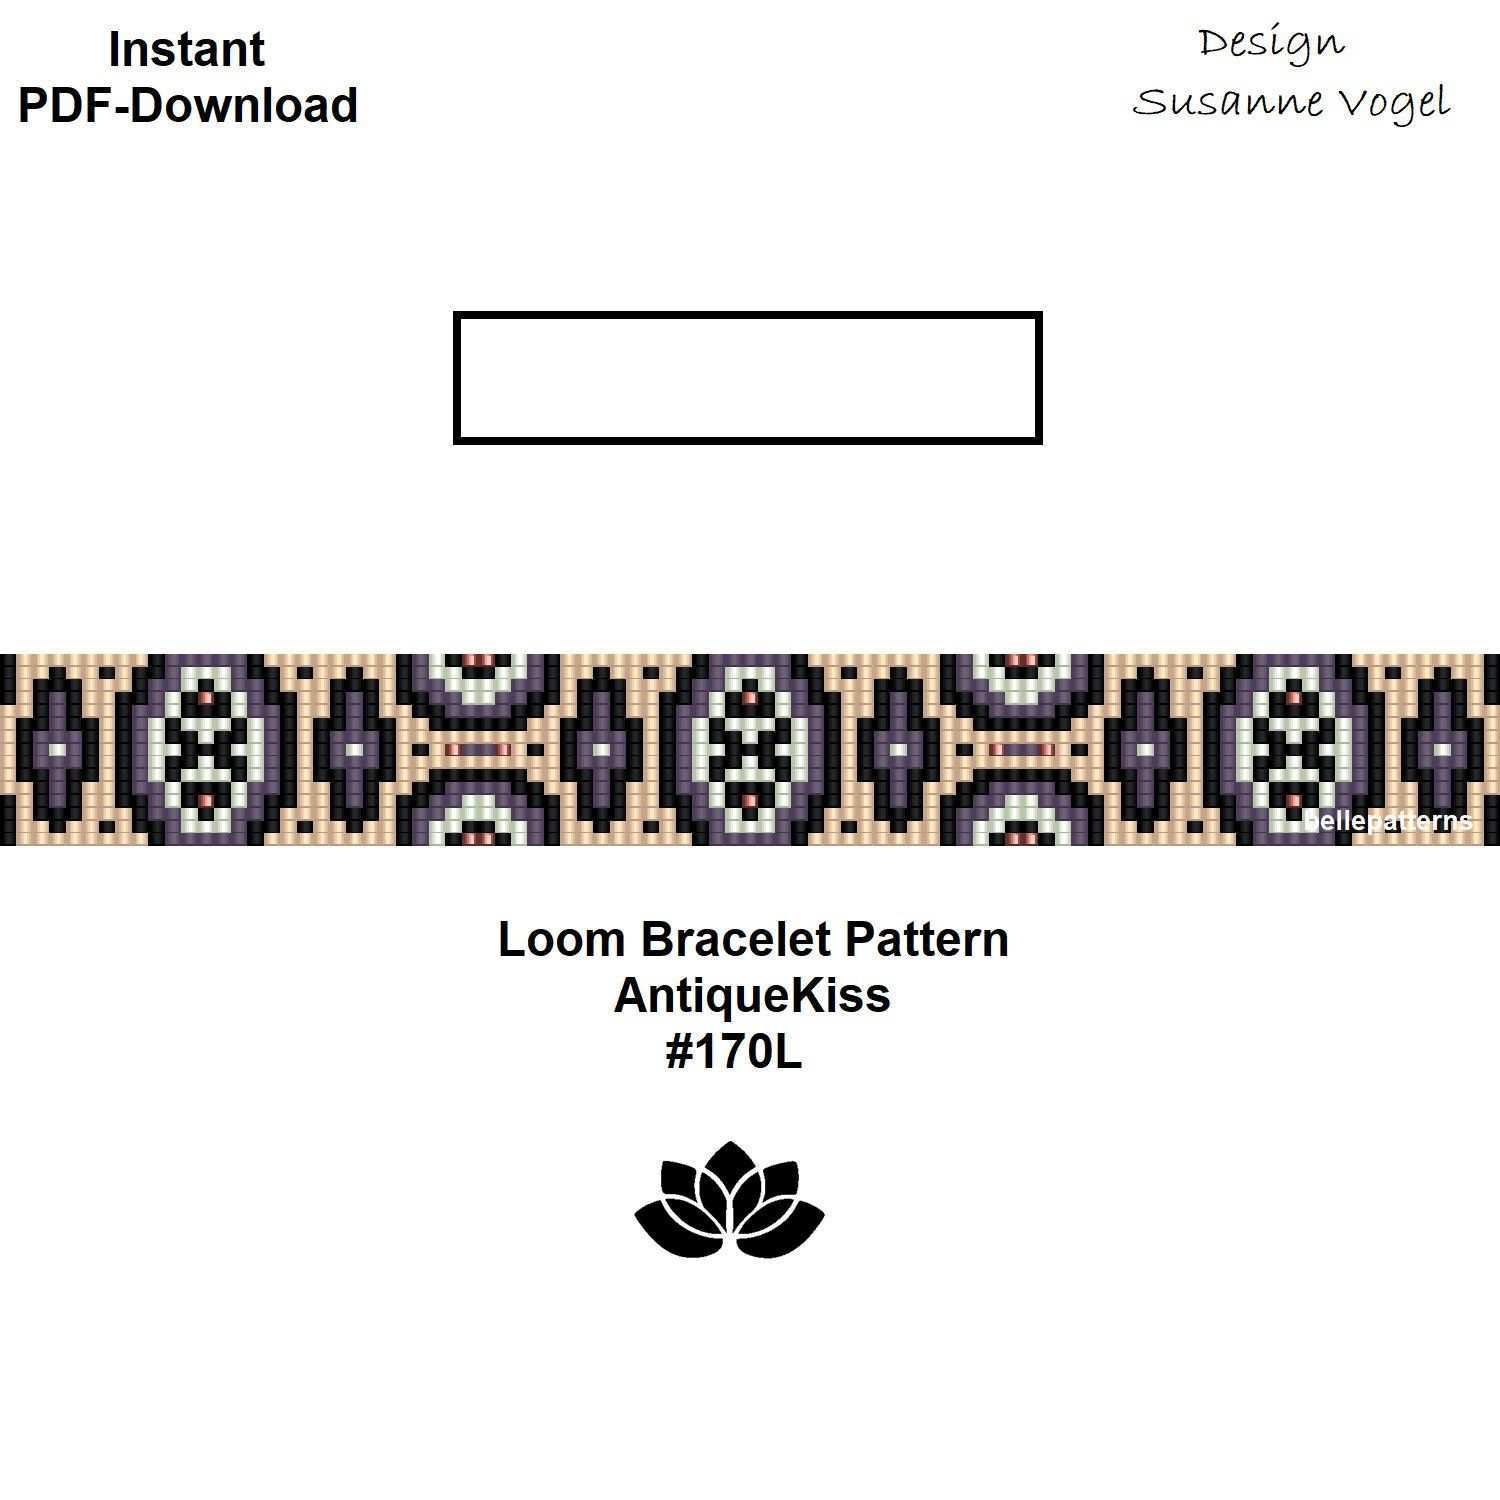 Webarmband Etsy Bracelet Patterns Loom Bracelet Patterns Loom Bracelets